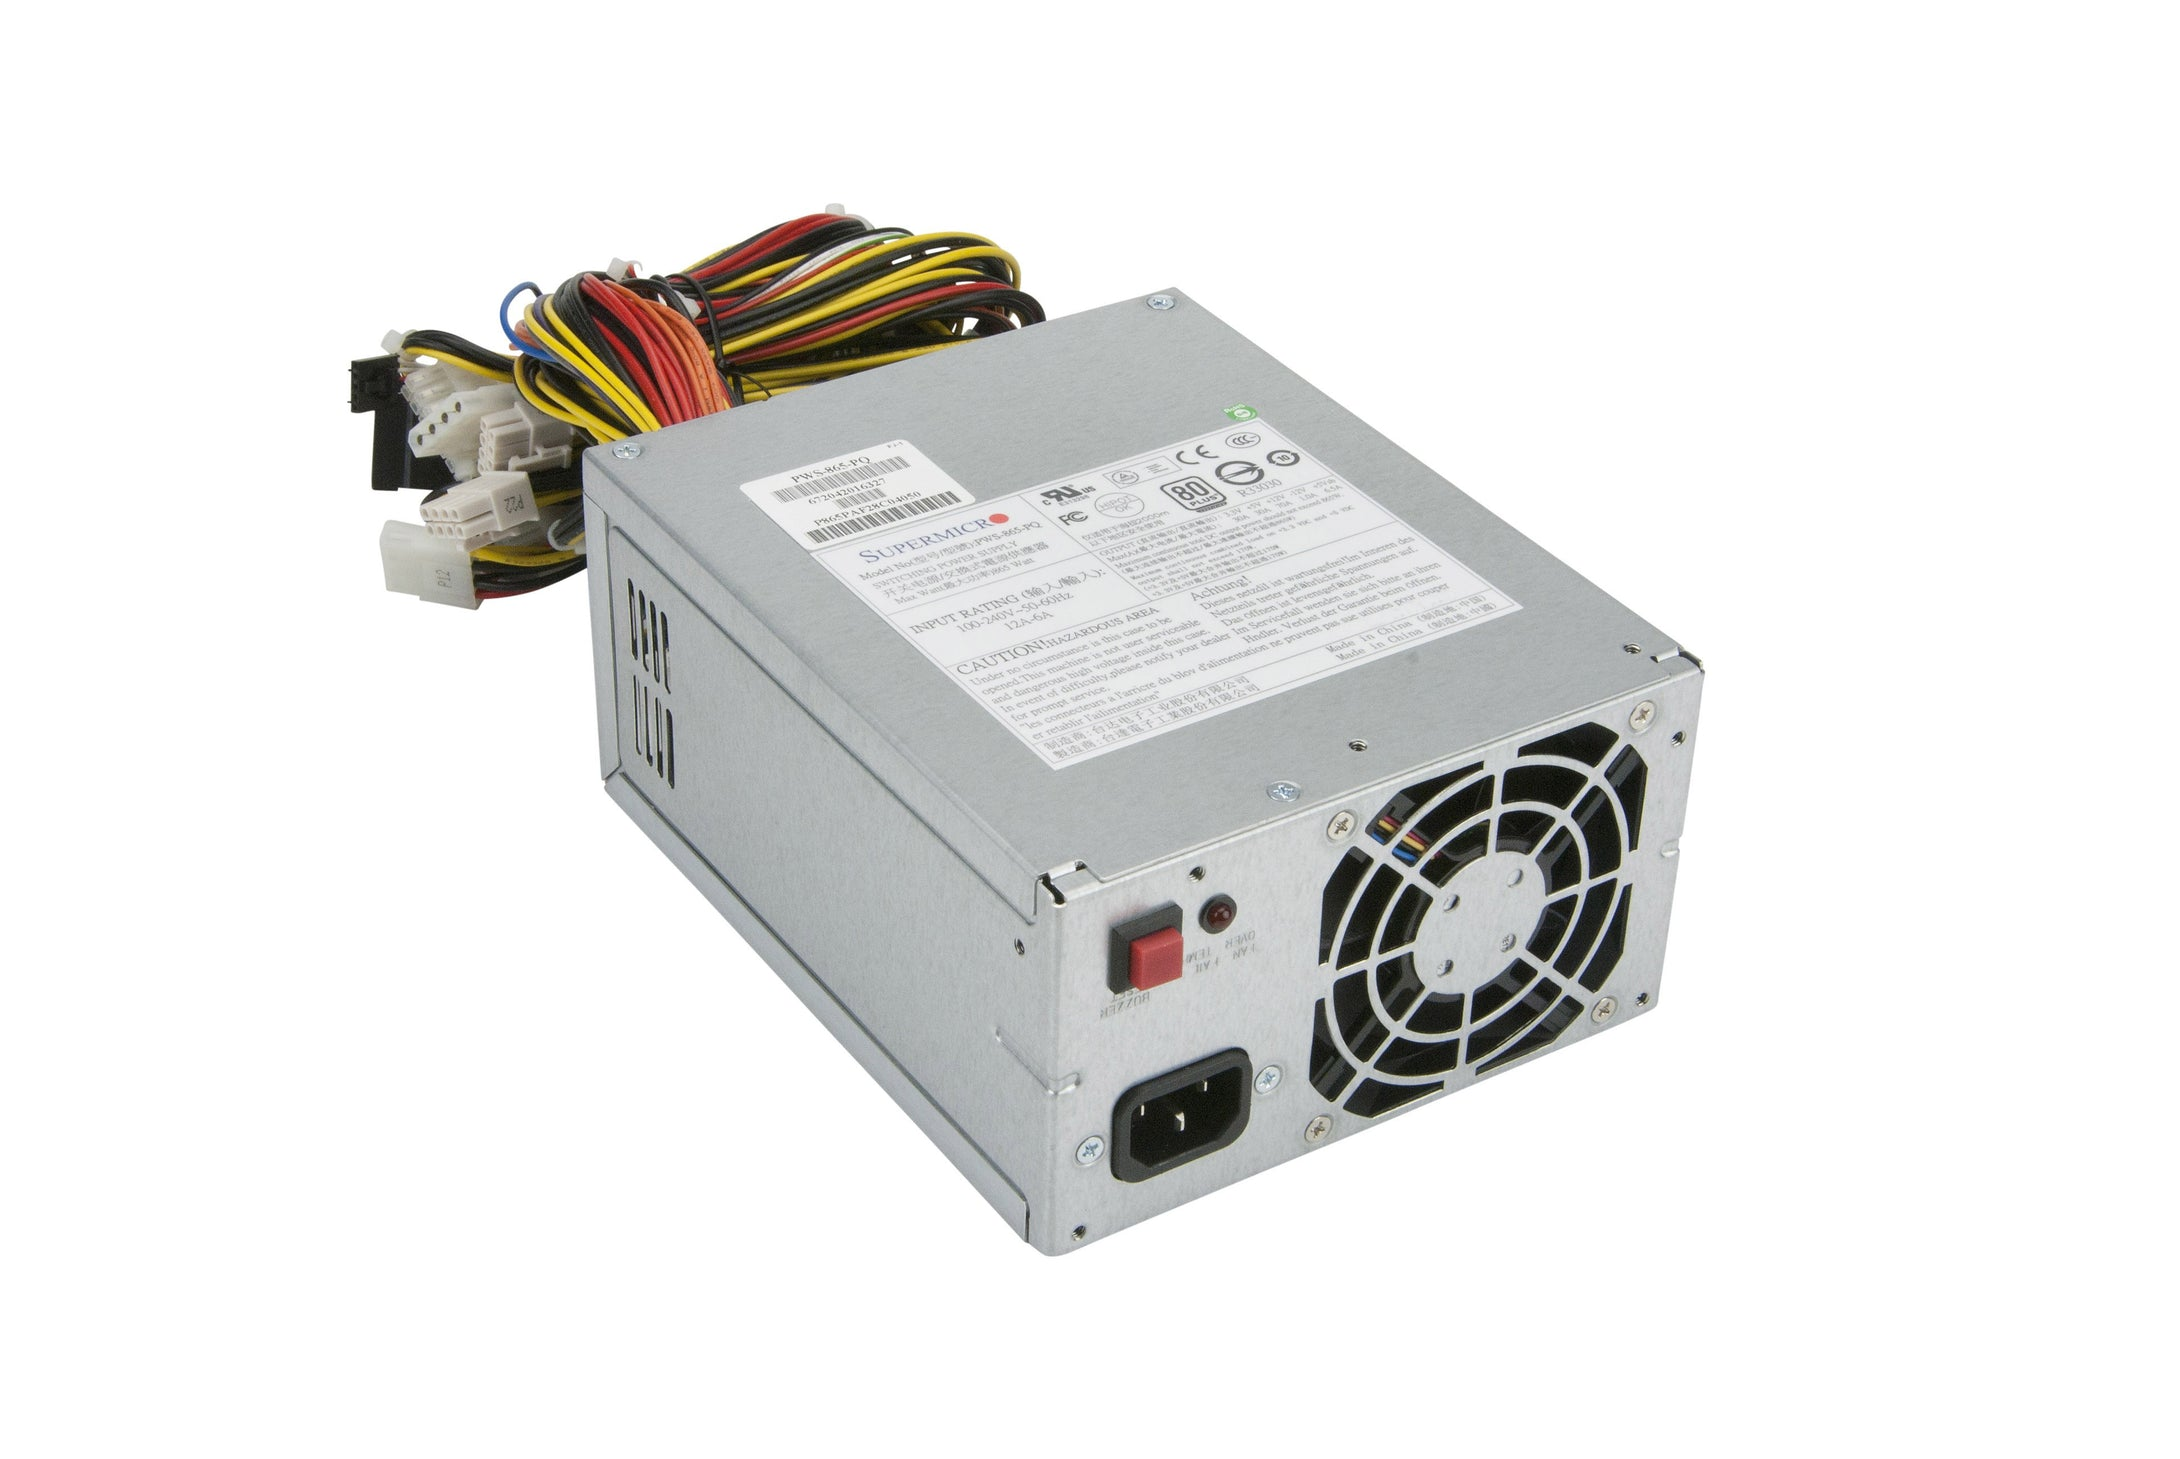 Supermicro 865W (PWS-865-PQ) EPS12V Super Quiet Server Power Supply - PWS-865-PQ